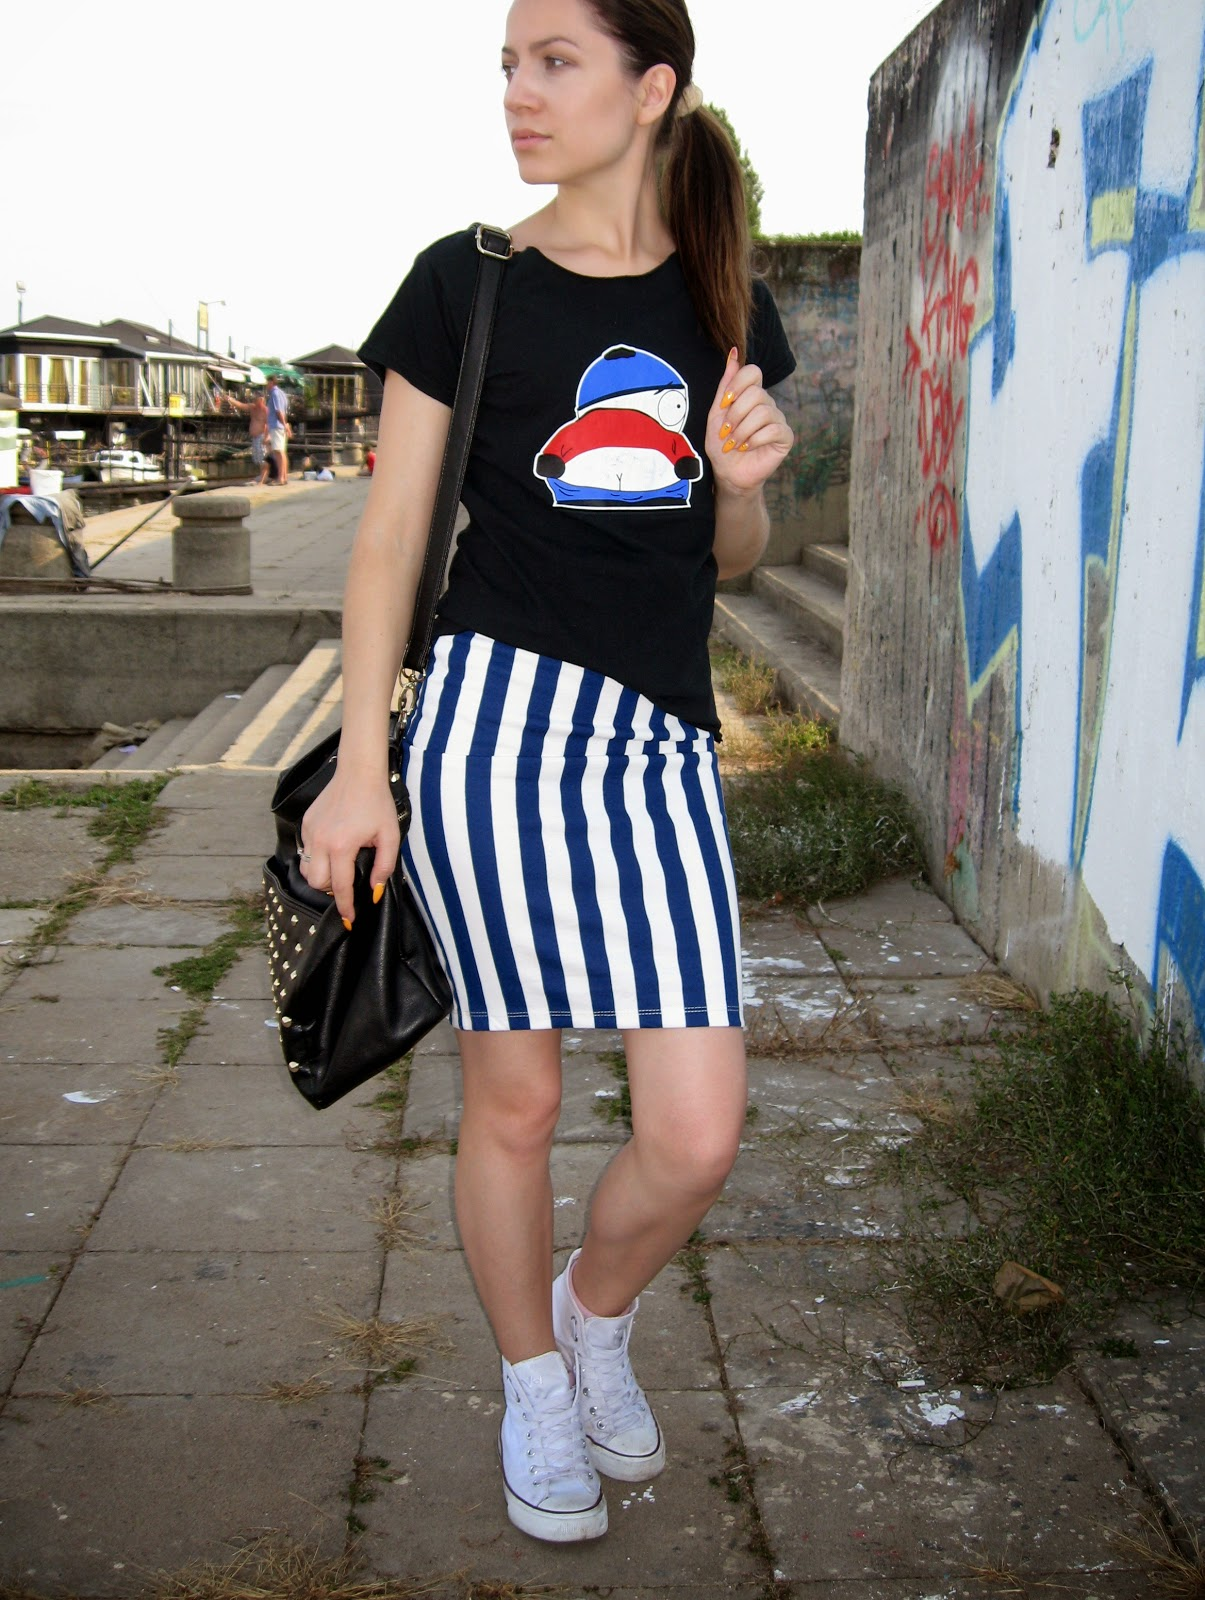 cartman print t shirt tee top, blue and white striped pencil skirt, deichmann white sneakers, styling white converse sneakers, carpisa black studded bag, sleek pony tail